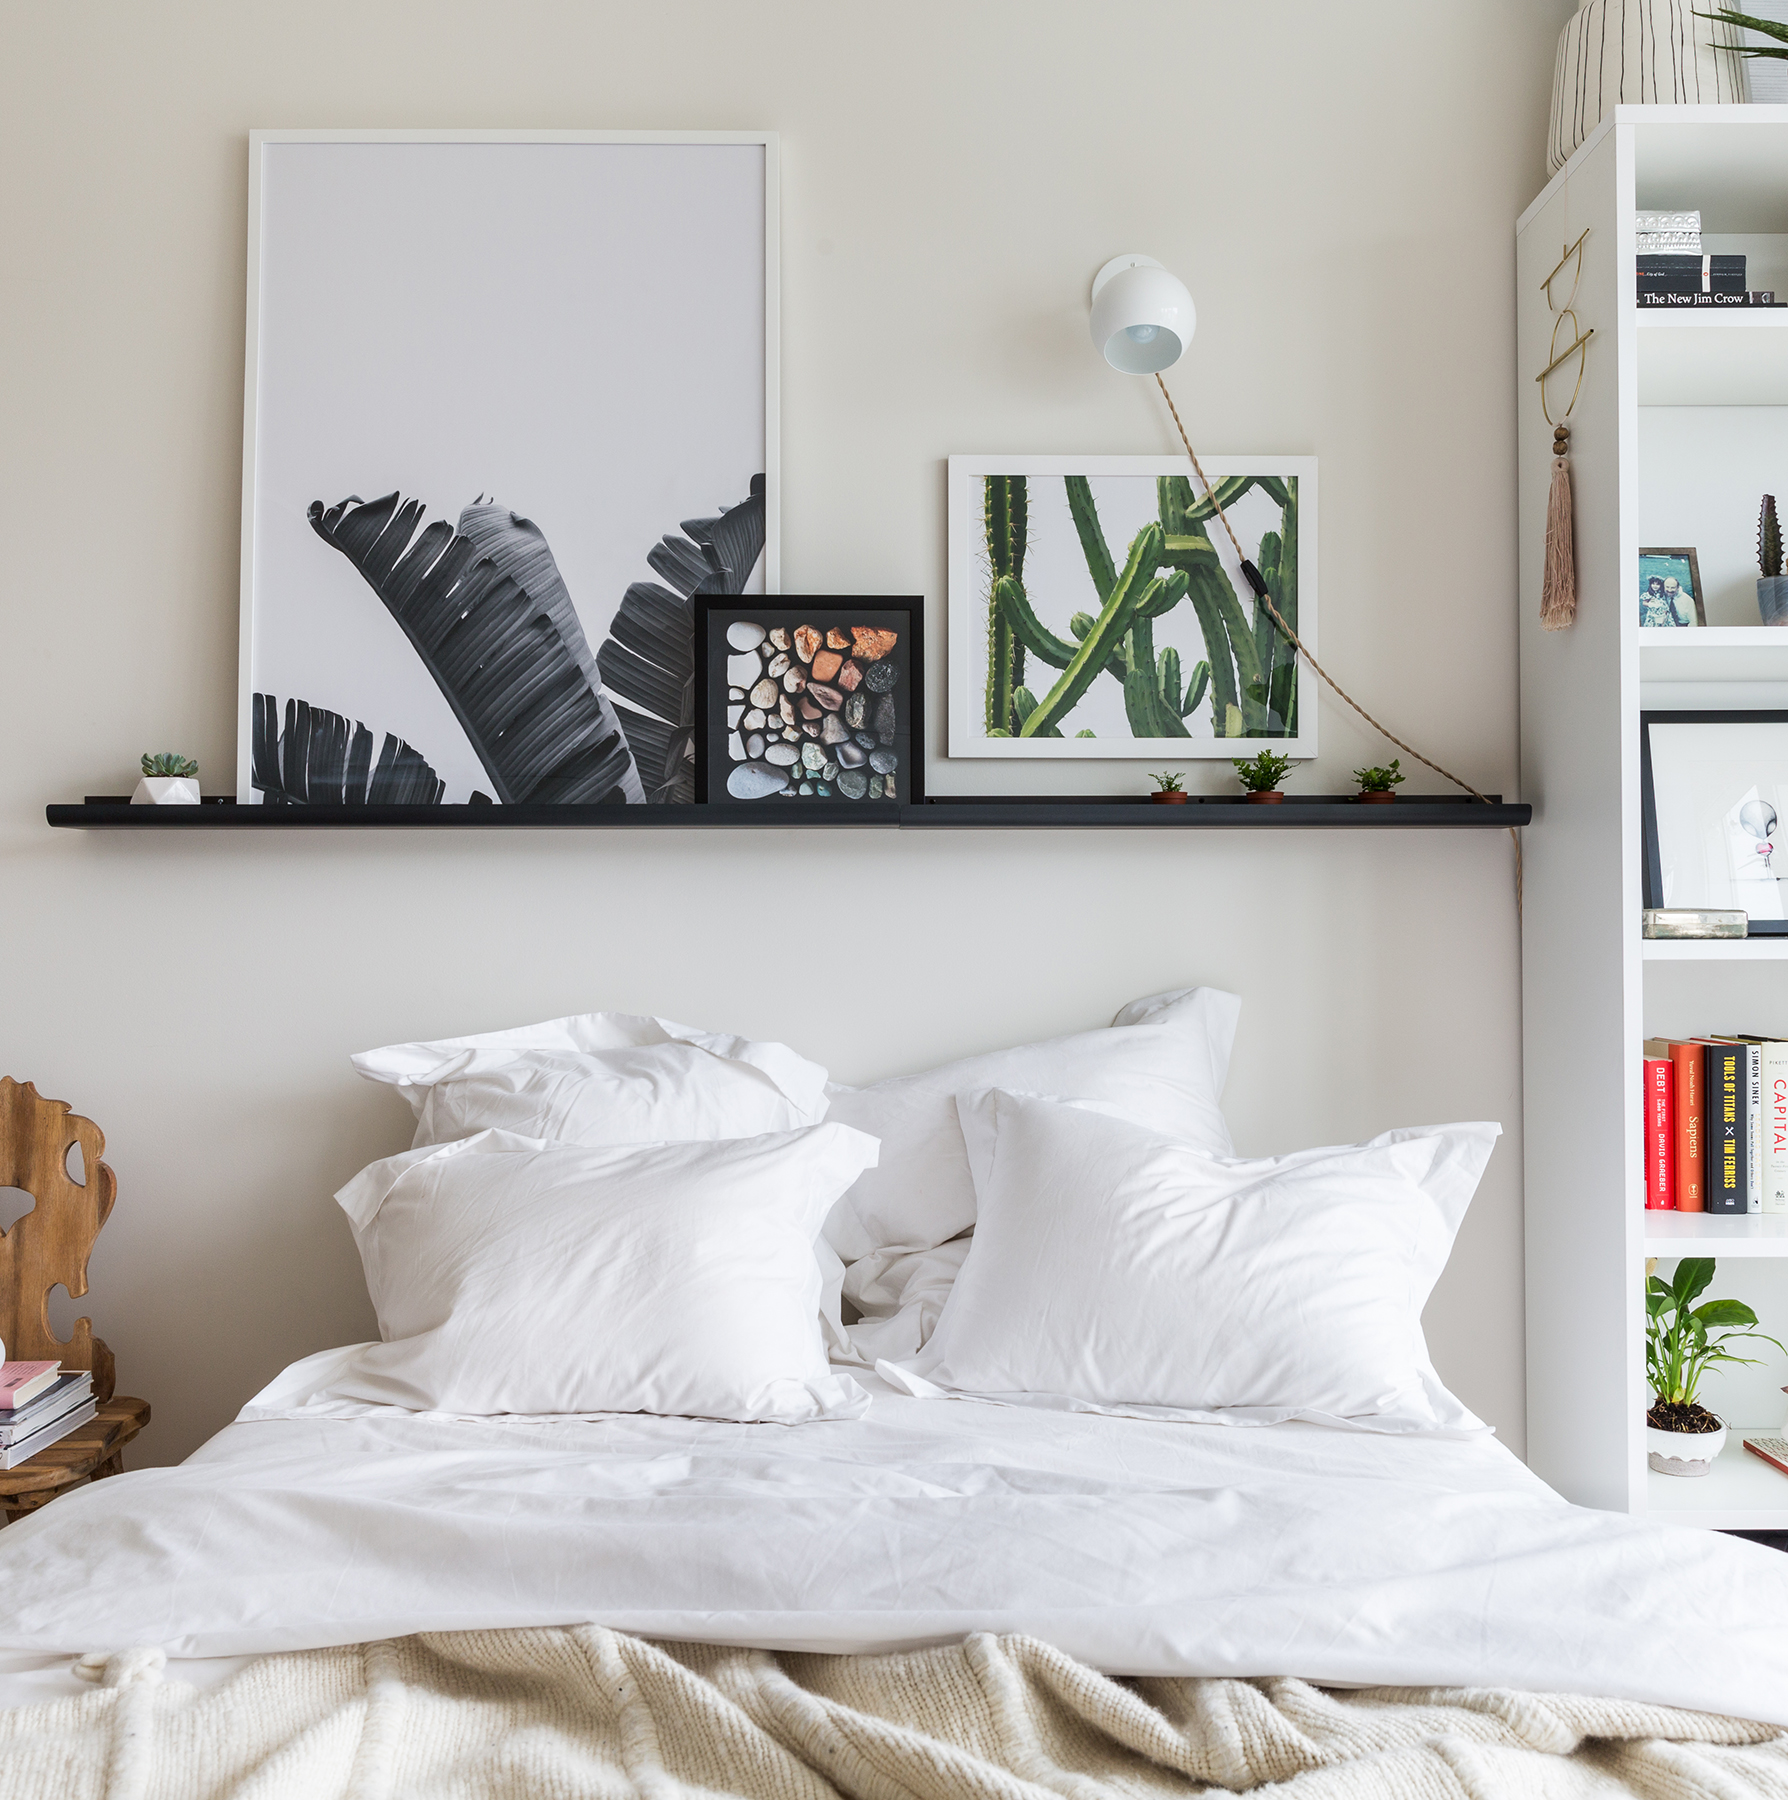 Bed with gallery shelf above